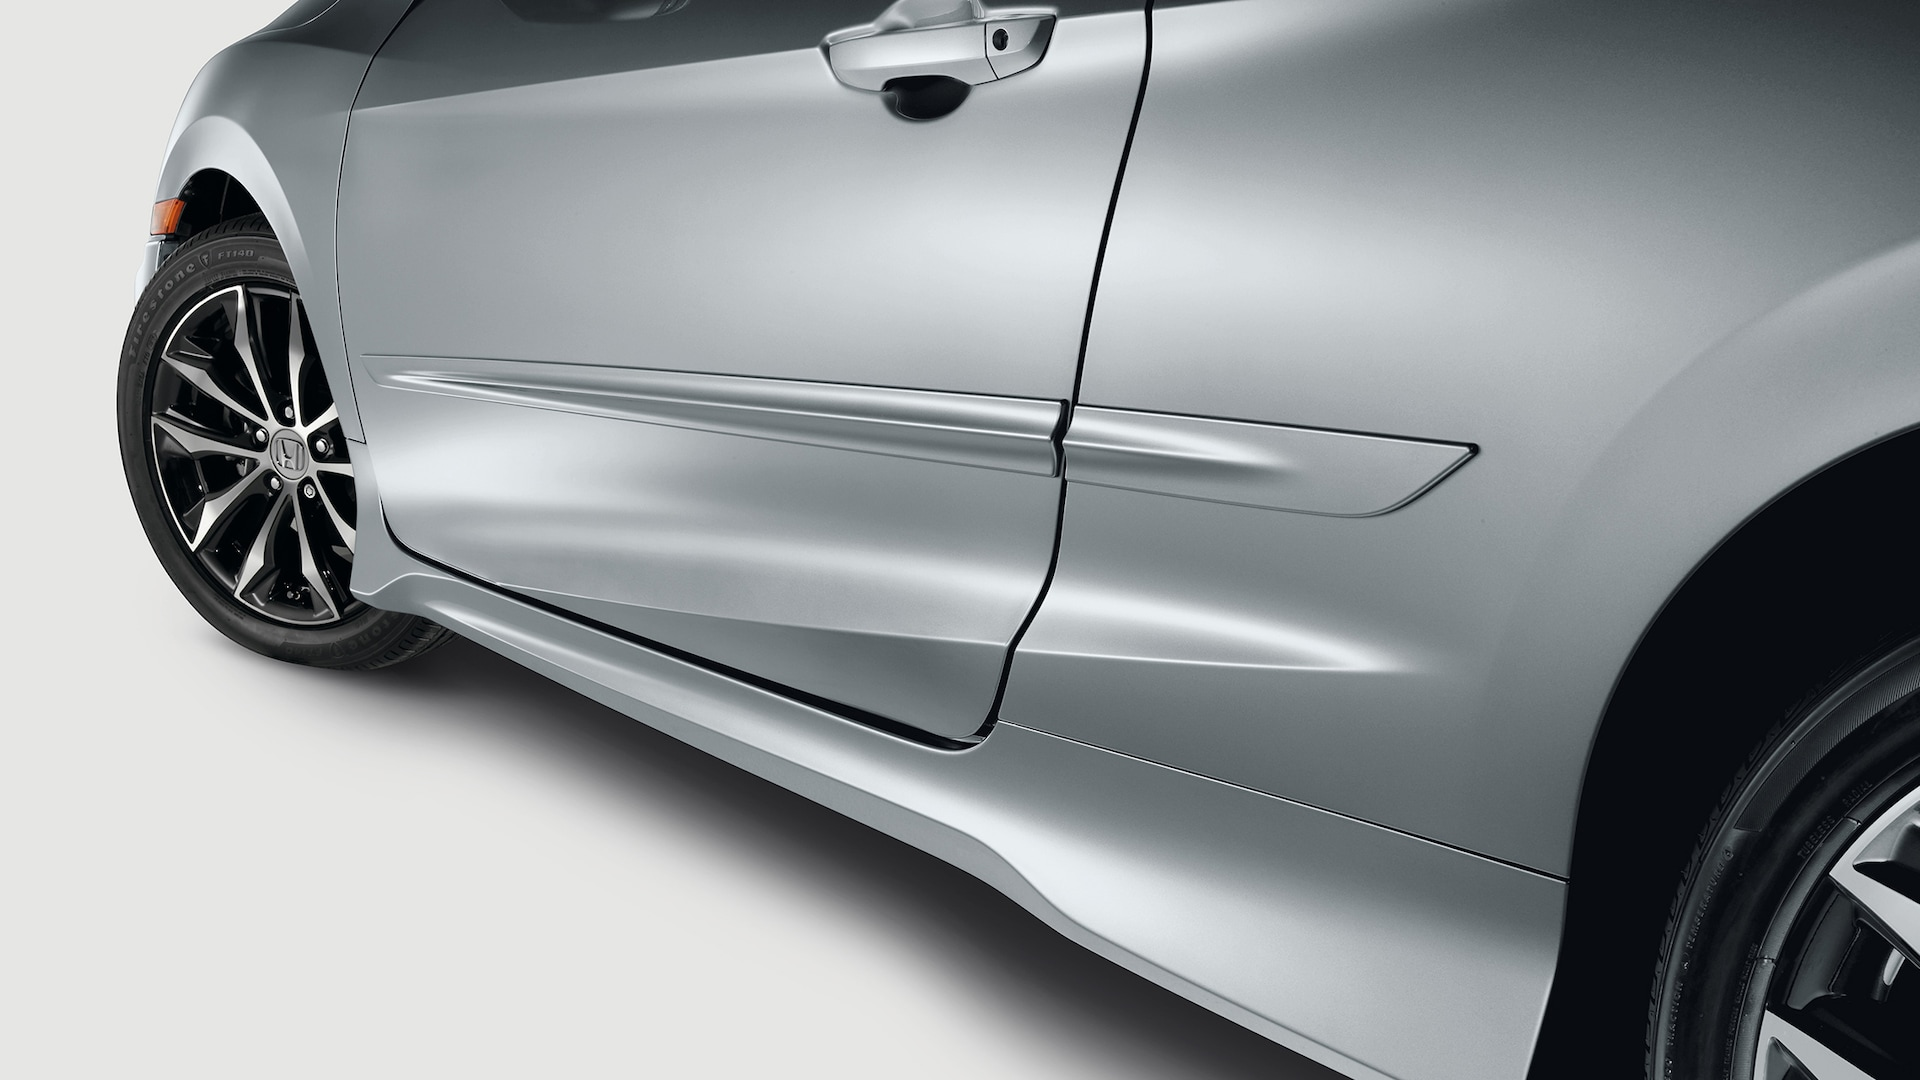 Accessory body side molding detail on the 2020 Honda Civic Coupe in Lunar Silver Metallic.